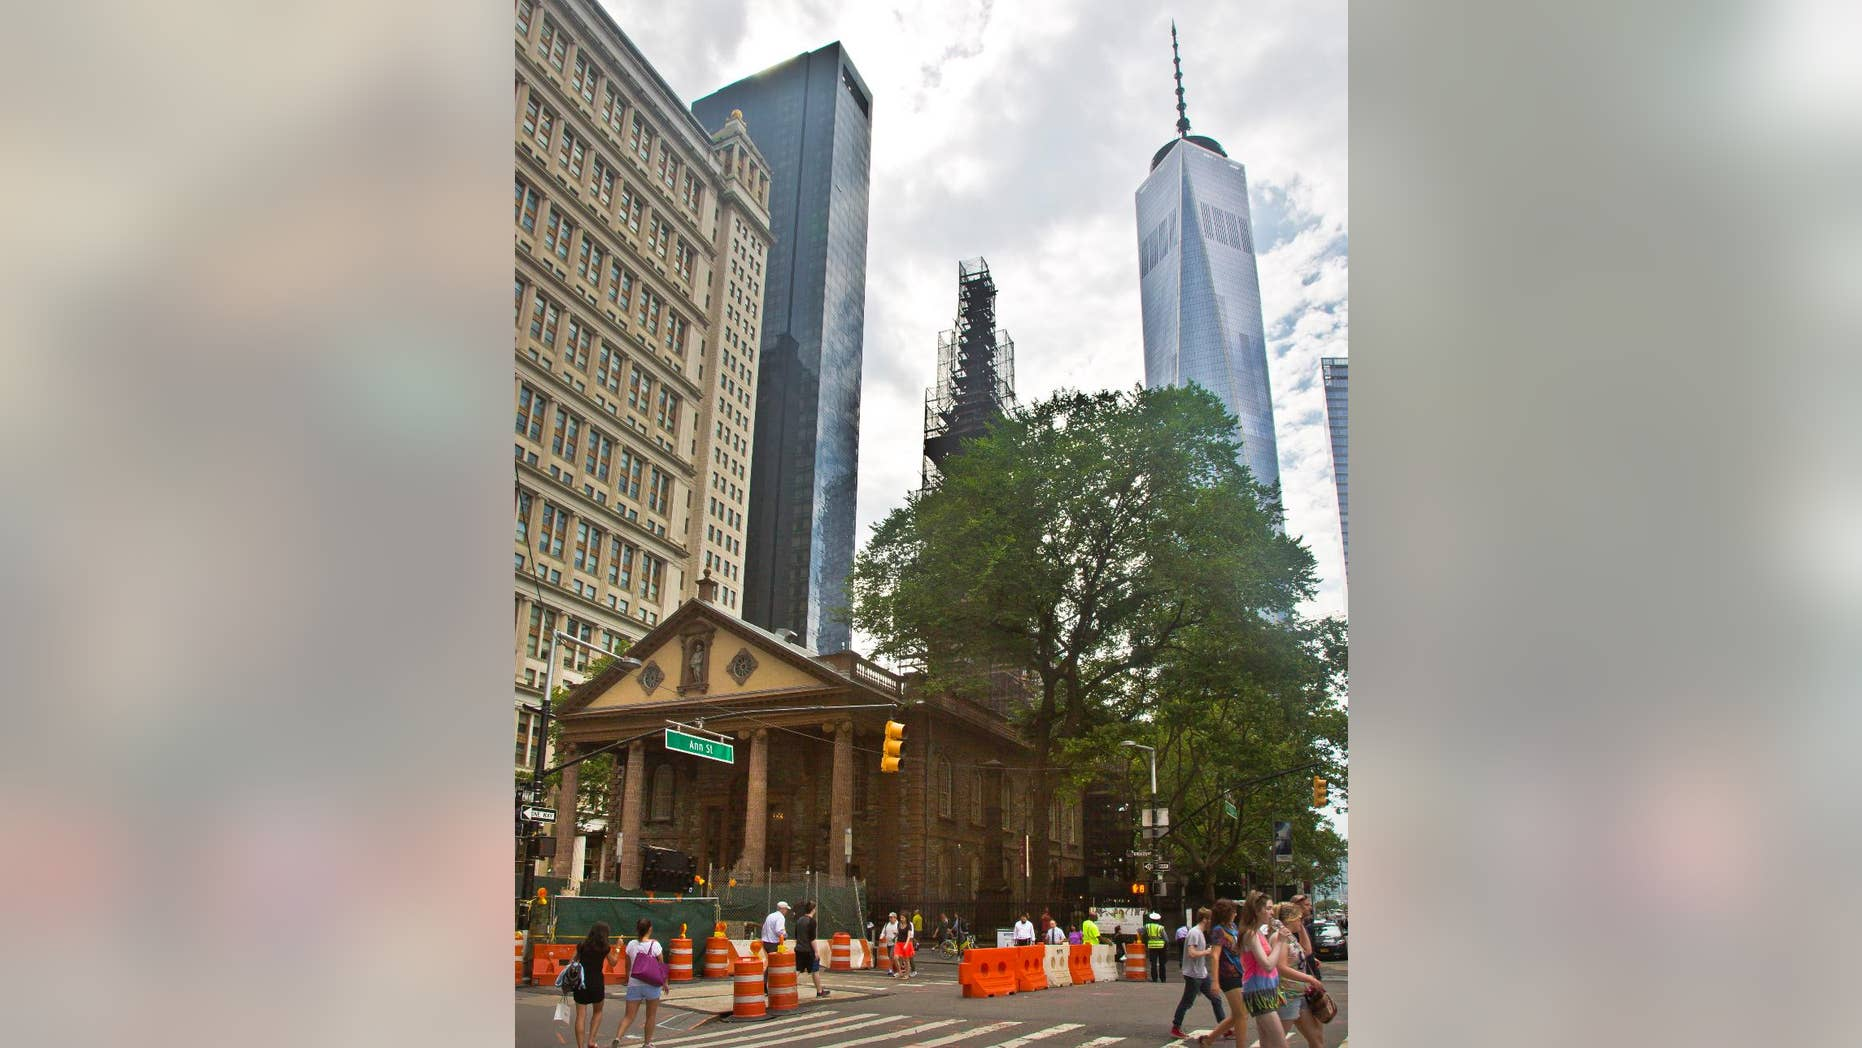 "FILE - In this June 25, 2015, file photo, the World Trade Center, right, looms behind St. Paul's Chapel with its steeple wrapped in scaffolding for repairs, in New York. The winner of a new competition open to people of all faiths called ""The Reconciliation Preaching Prize,"" has been won by an Army chaplain from Austin, Texas. The Rev. David Peters will have the privilege of delivering an original sermon on Sept. 11, at the chapel near ground zero that was turned into a makeshift memorial shrine and became a place of rest and renewal for volunteers and responders, following the terrorist attacks that brought down the twin towers. (AP Photo/Bebeto Matthews, File)"